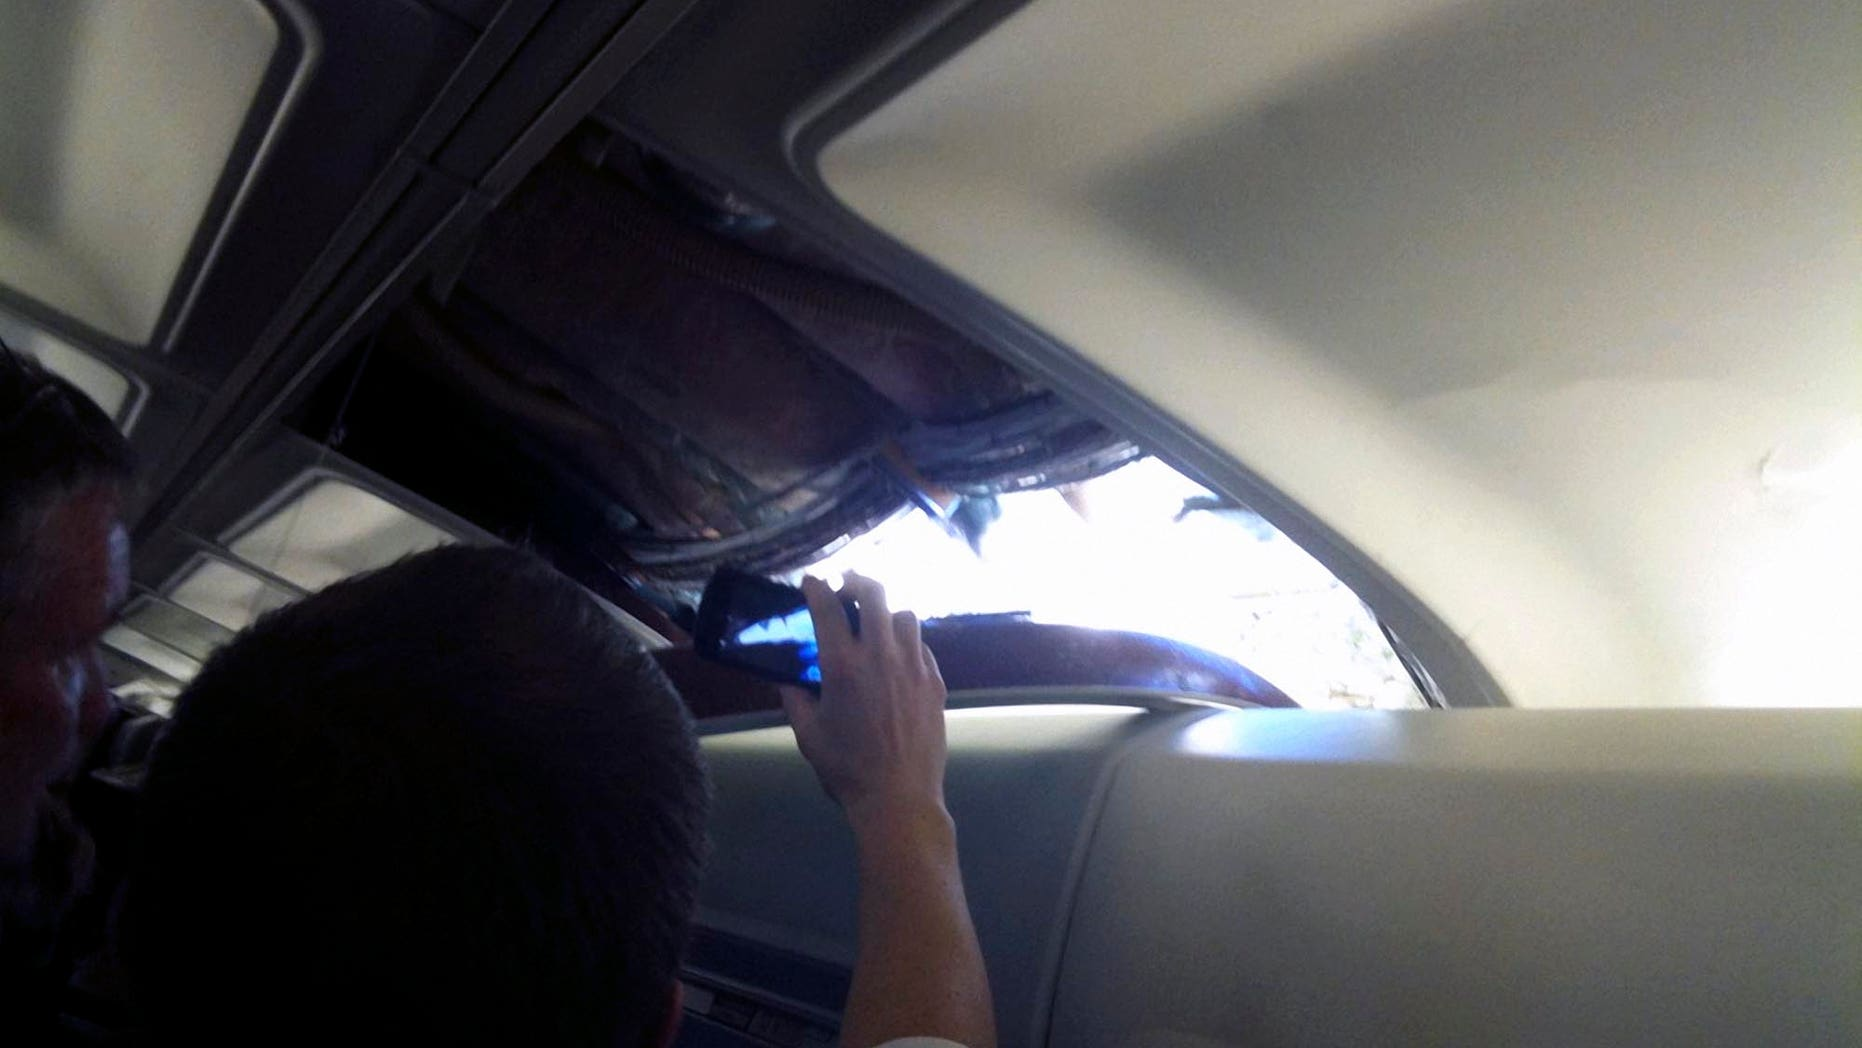 April 1: A passenger photo taken with a cell phone shows a hole in the cabin on a Southwest Airlines aircraft.